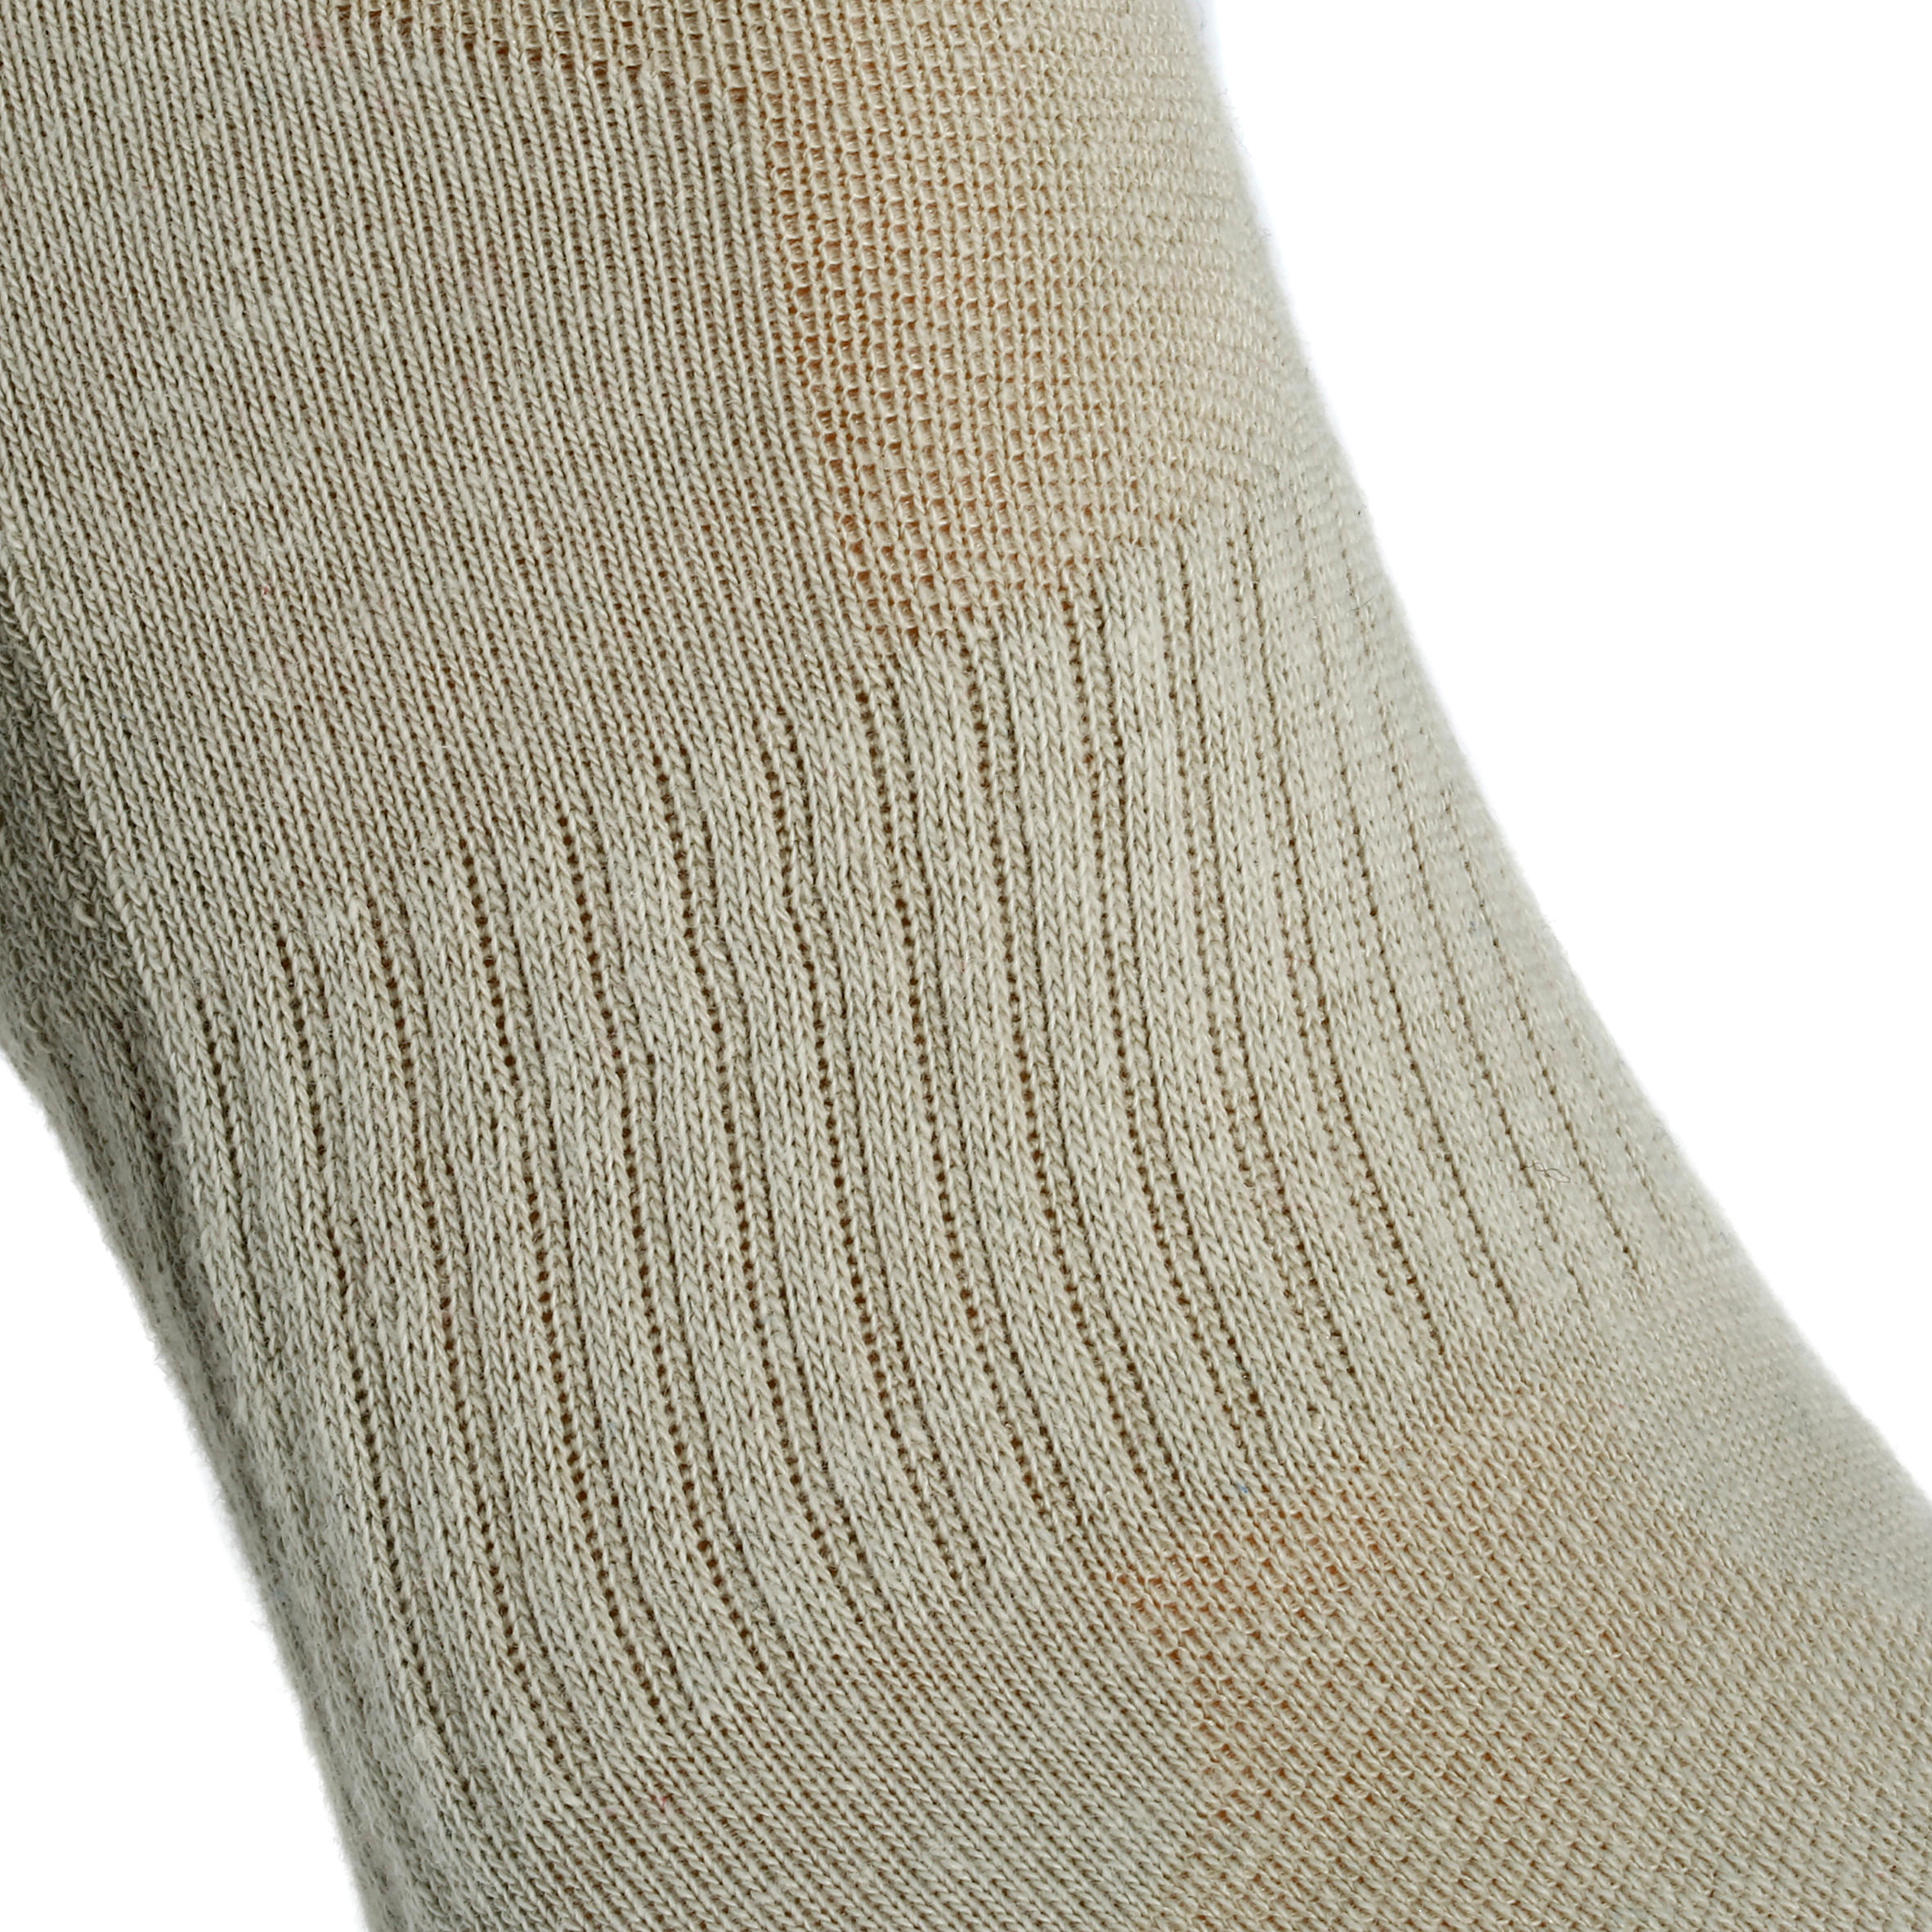 NH100 Mid country walking socks - beige x 2 pairs